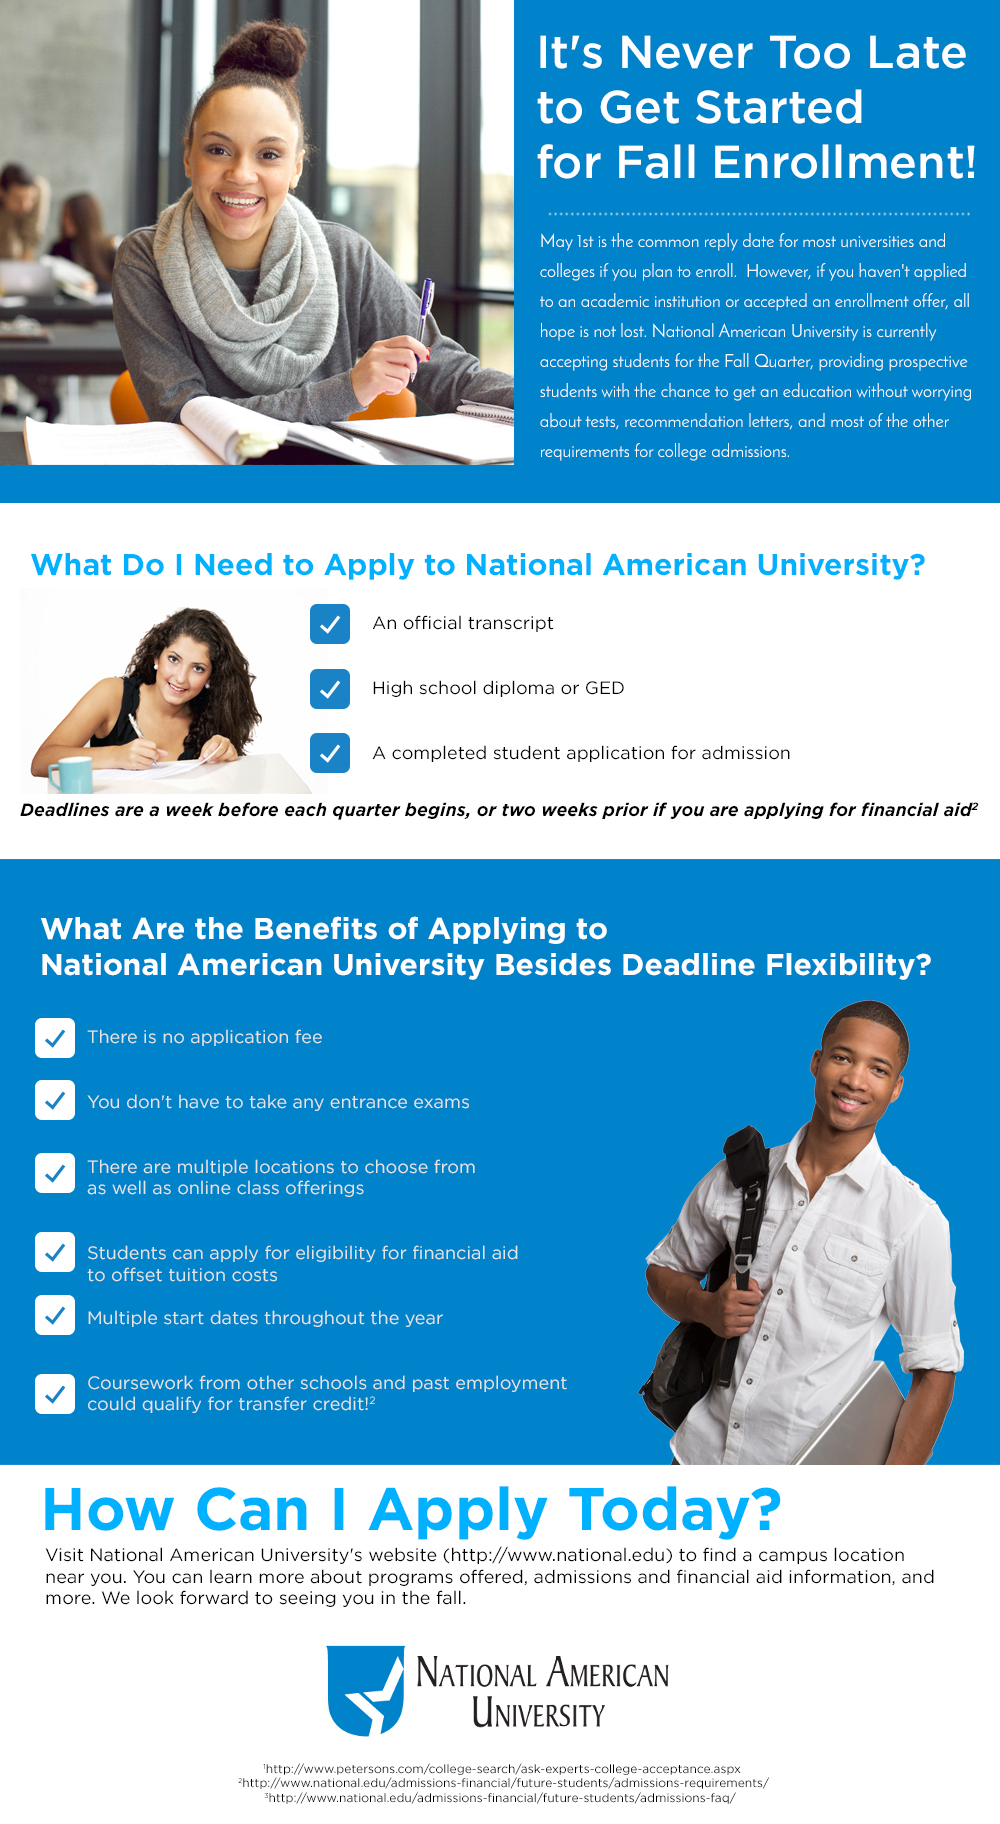 NationalEDU_Infographic_Never-Too-Late-to-Get-Started-for-Fall-Enrollment